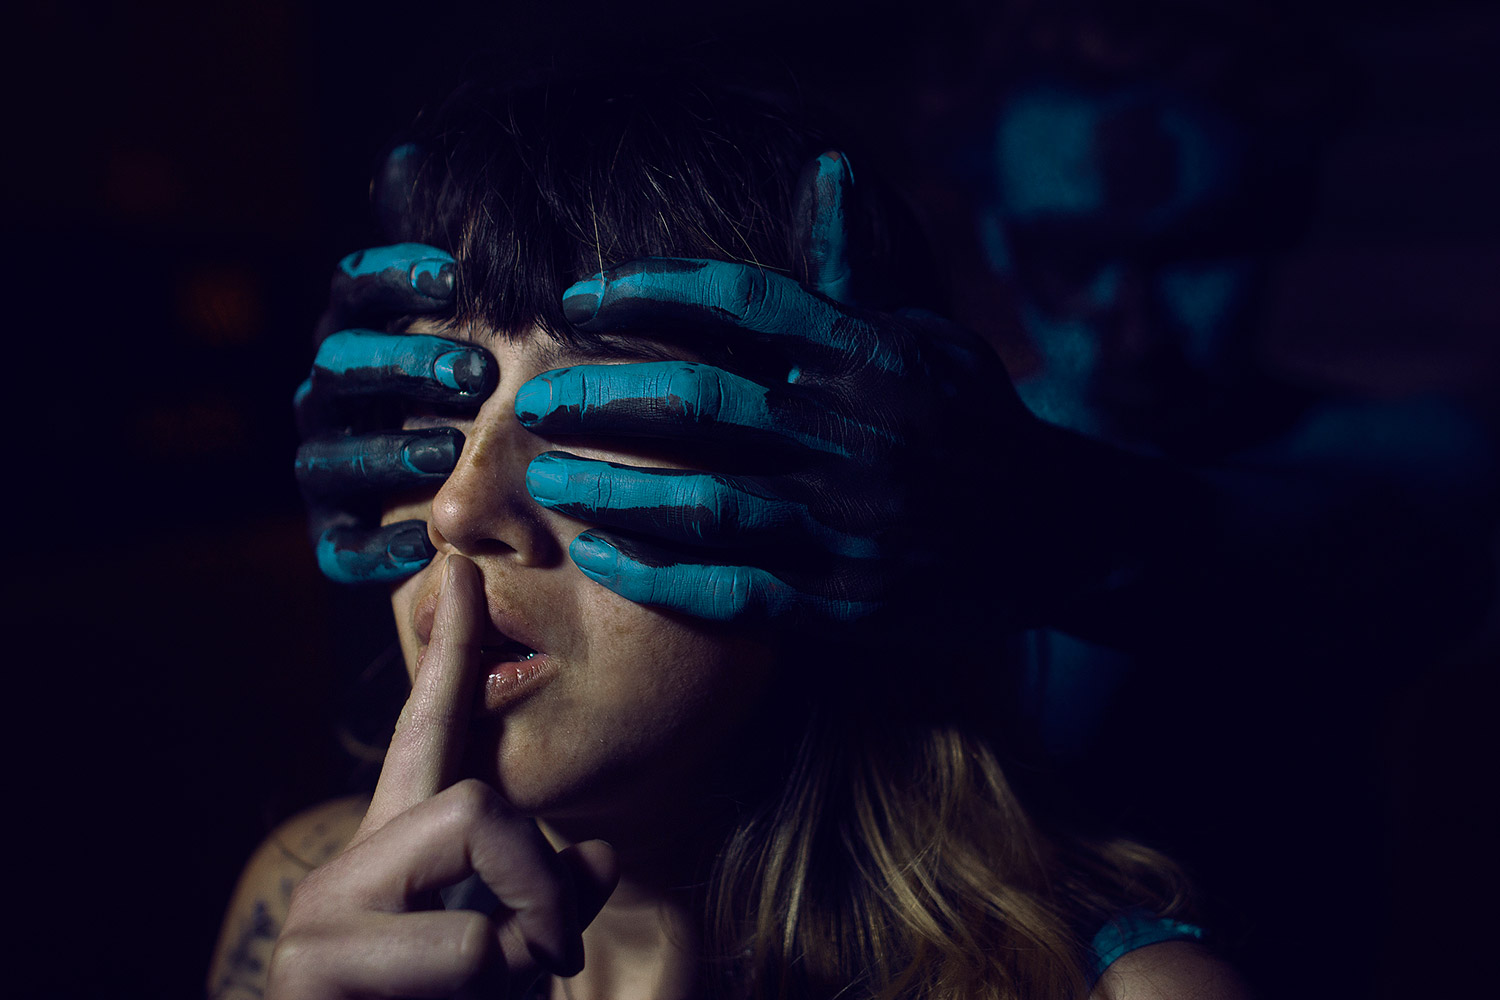 Kavan the Kid, model Lauren Kopp, dark photo with hands over a woman's eyes